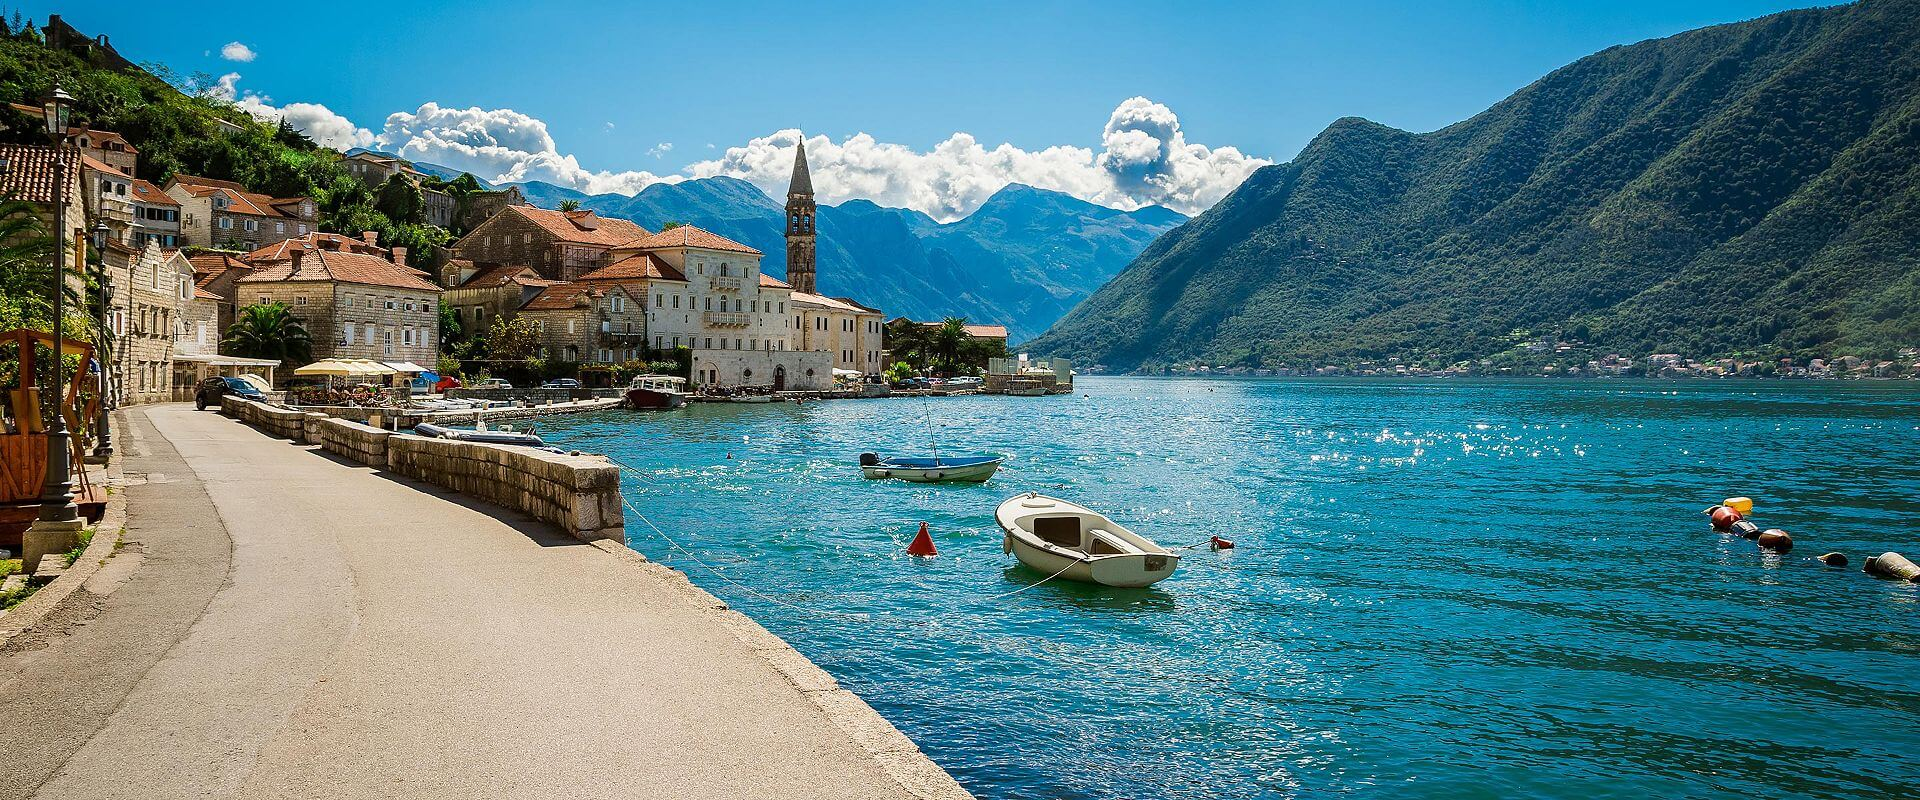 Montenegro Citizenship-by-Investment